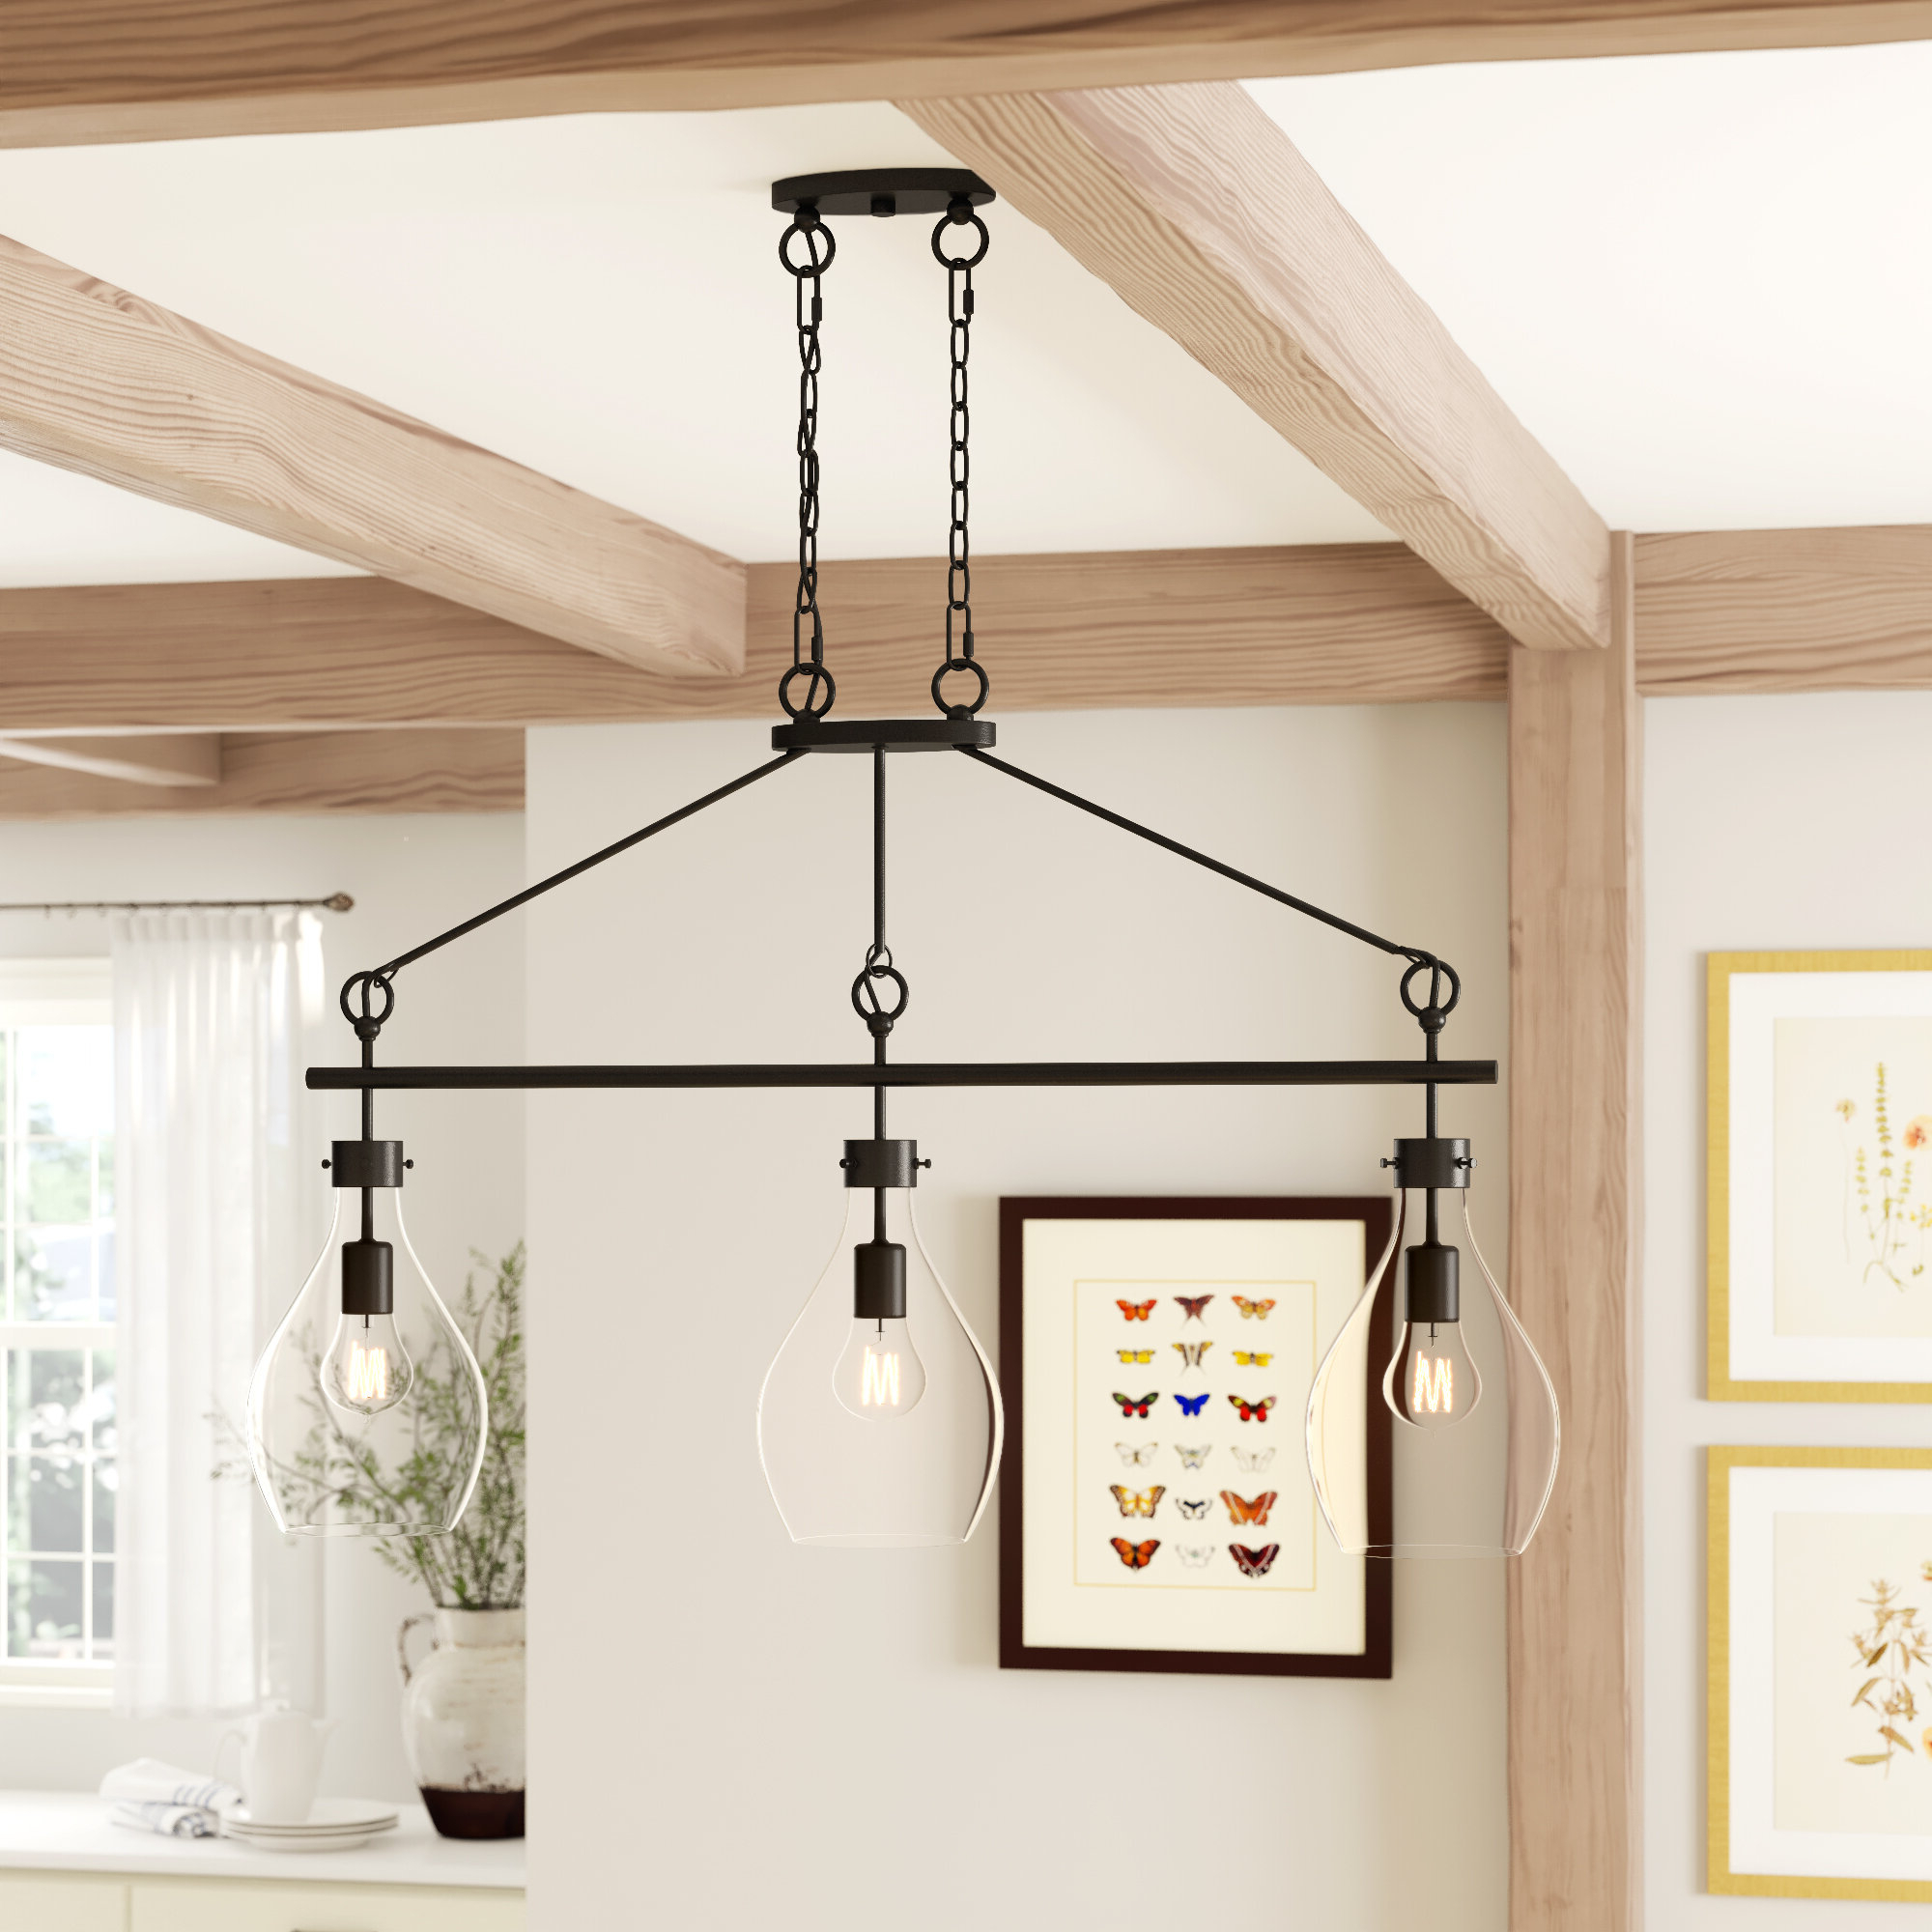 Ariel 2 Light Kitchen Island Dome Pendants With Well Known Nan 3 Light Kitchen Island Teardrop Pendant (View 8 of 20)